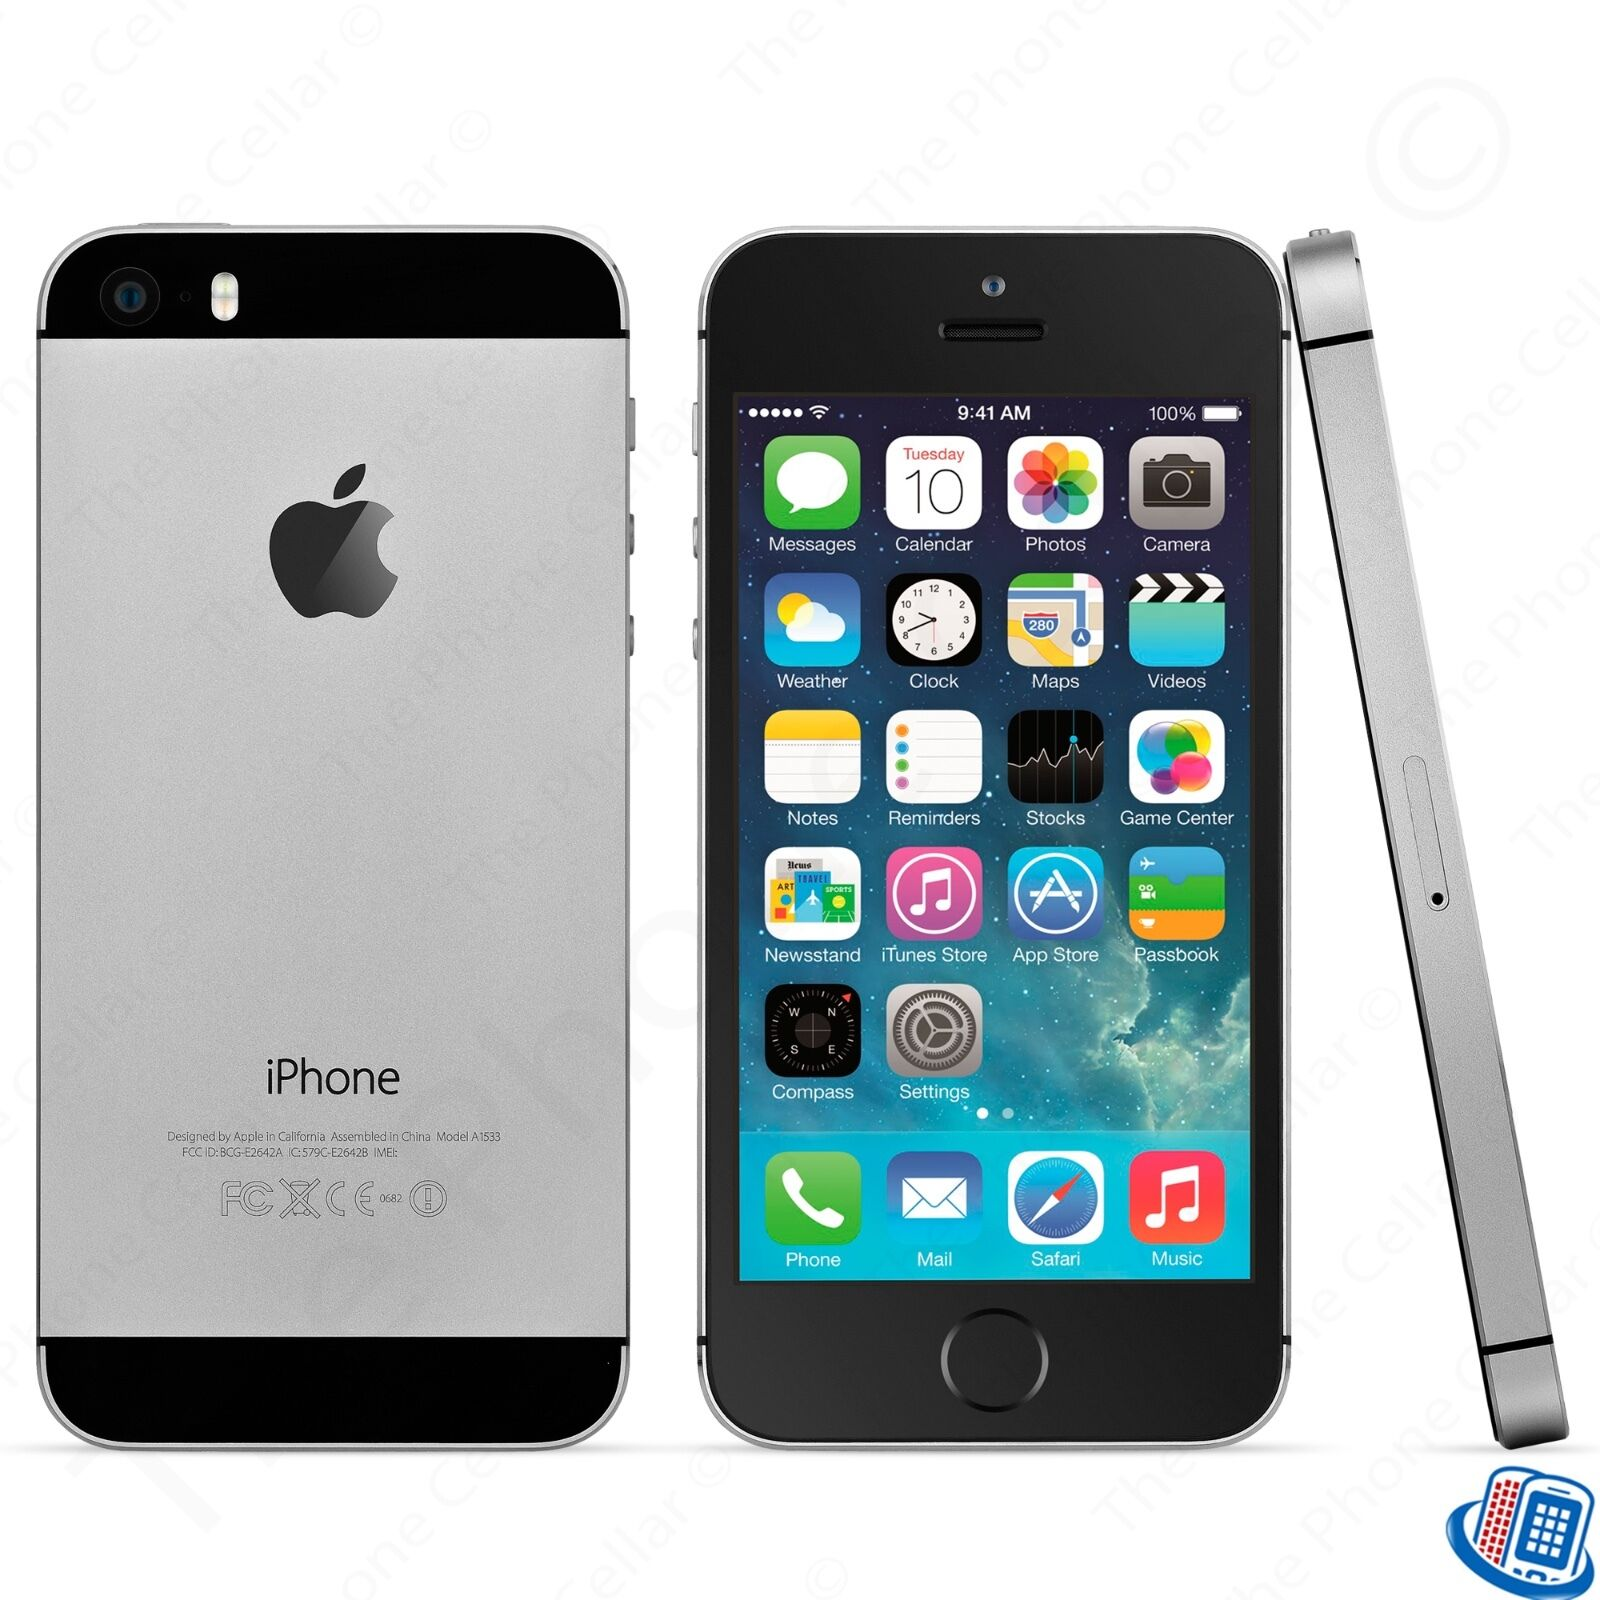 locked verizon prepaid apple iphone 5s 16gb space gray. Black Bedroom Furniture Sets. Home Design Ideas